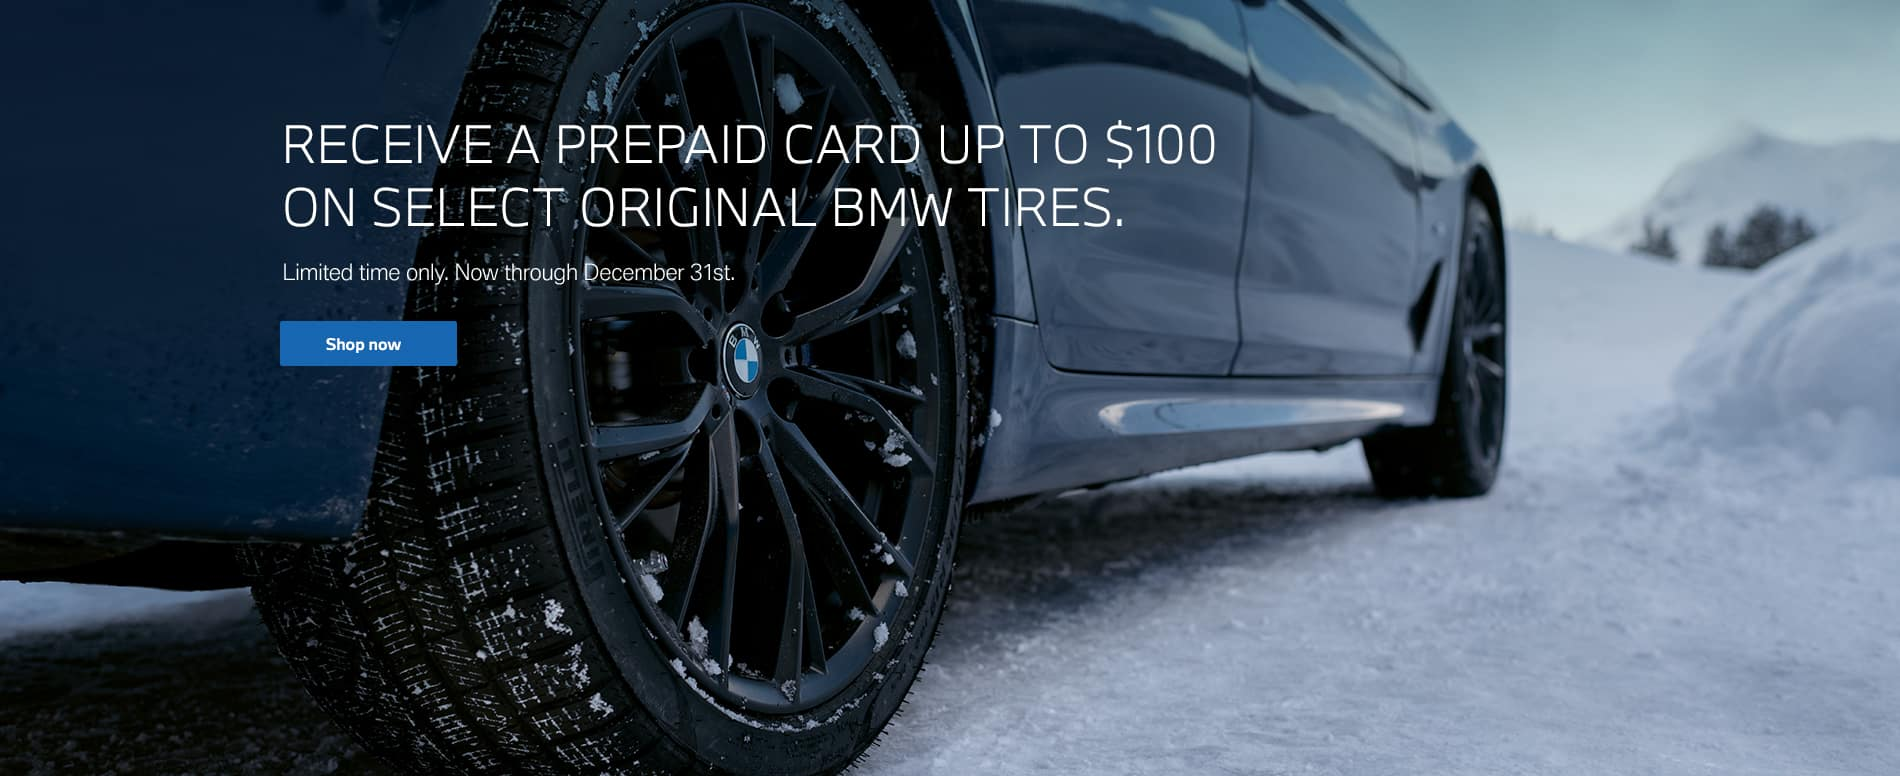 Tire Rebate. Get a prepaid card for up to $100. See dealer for complete details.